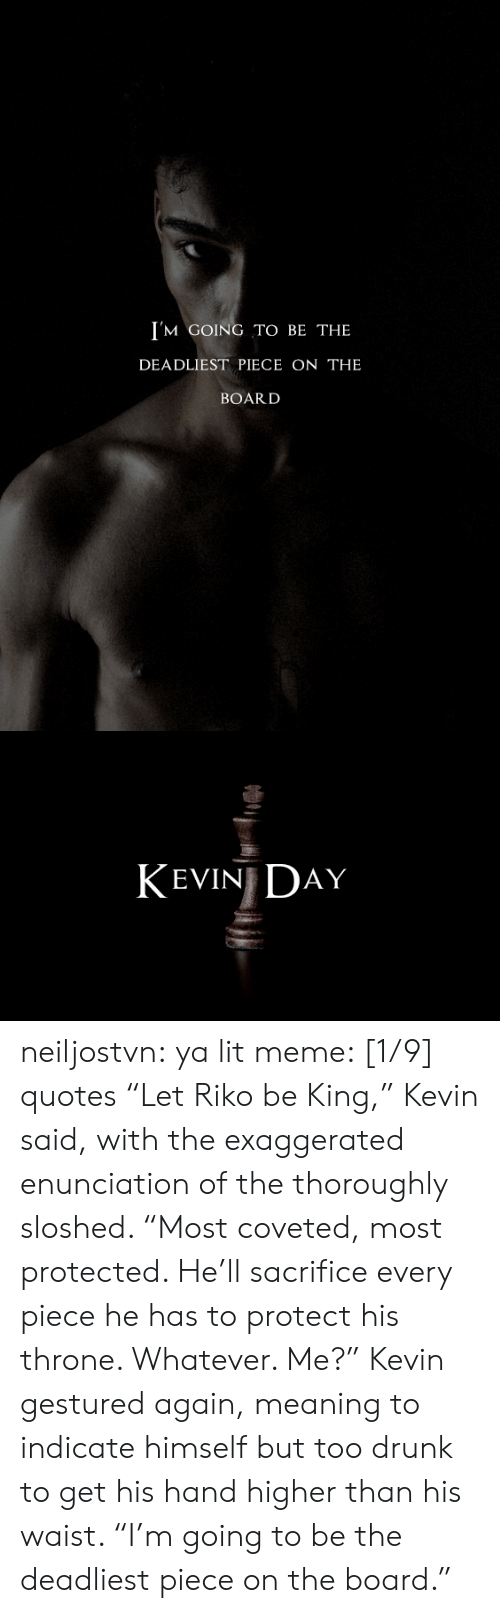 """Drunk, Lit, and Meme: I'M GOING TO BE THE  DEADLIEST PIECE ON THE  BOARD   KEVIN DAY neiljostvn:  ya lit meme: [1/9] quotes   """"Let Riko be King,"""" Kevin said, with the exaggerated enunciation of the thoroughly sloshed. """"Most coveted, most protected. He'll sacrifice every piece he has to protect his throne. Whatever. Me?"""" Kevin gestured again, meaning to indicate himself but too drunk to get his hand higher than his waist. """"I'm going to be the deadliest piece on the board."""""""